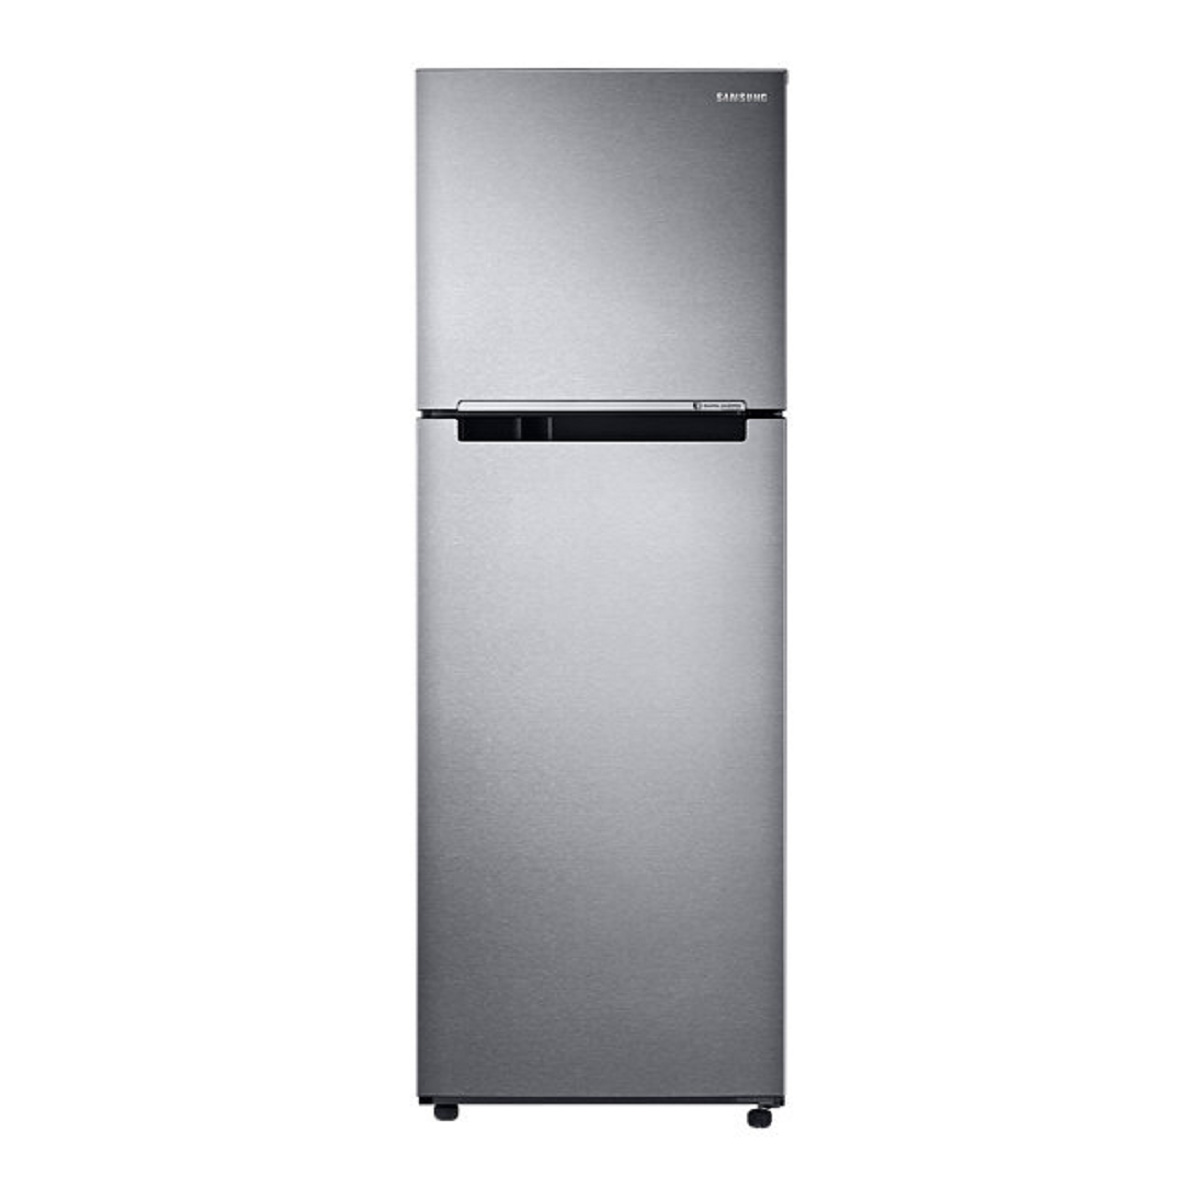 Samsung SR343LSTC 343L Top Mount Fridge